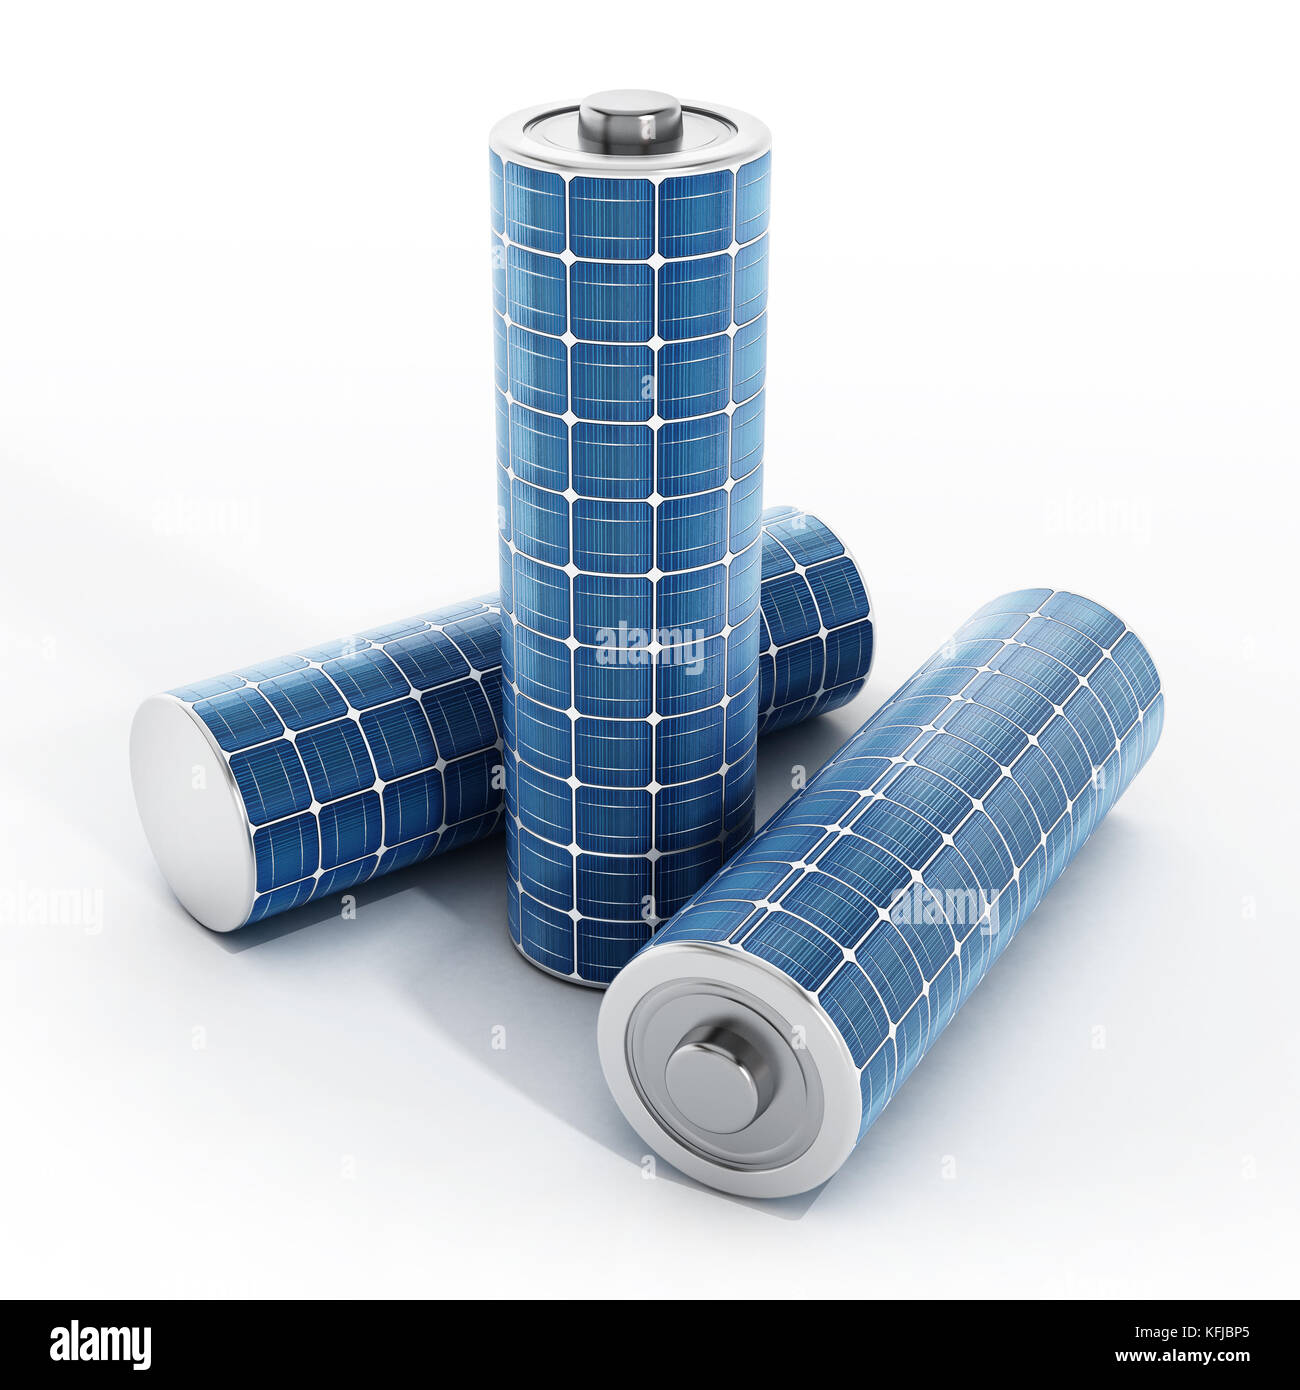 Solar panel on AAA type battery. 3D illustration. - Stock Image